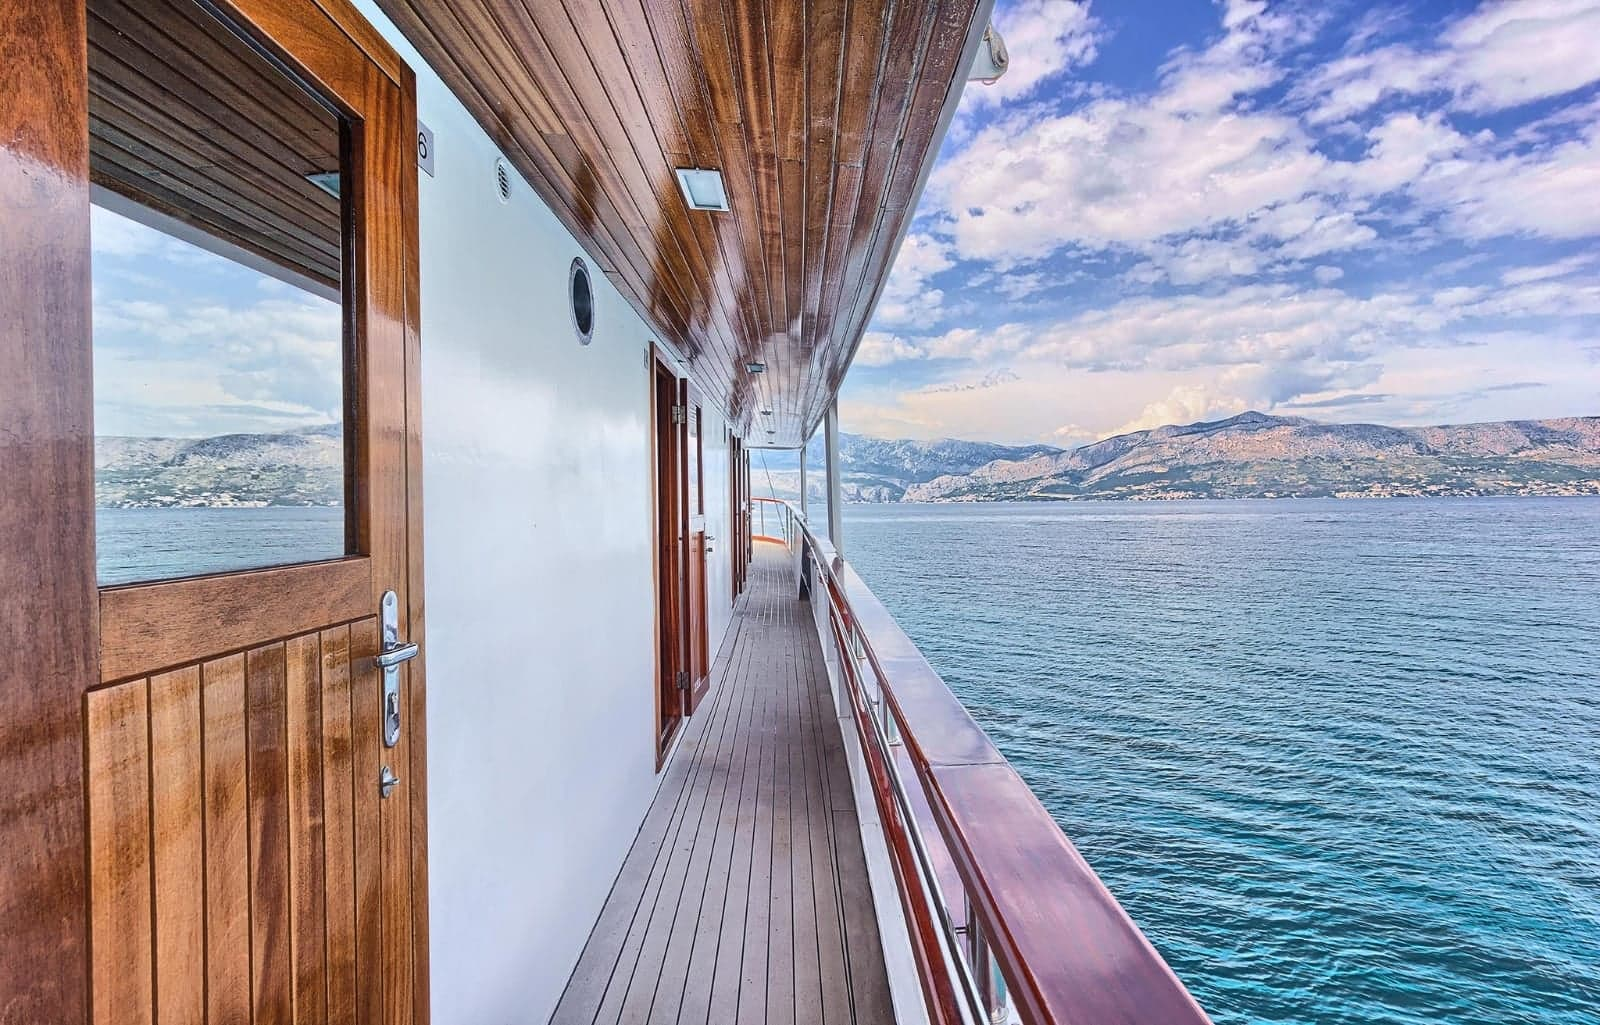 Croatia cycling and sailing tours on the Ocean boat.jpg